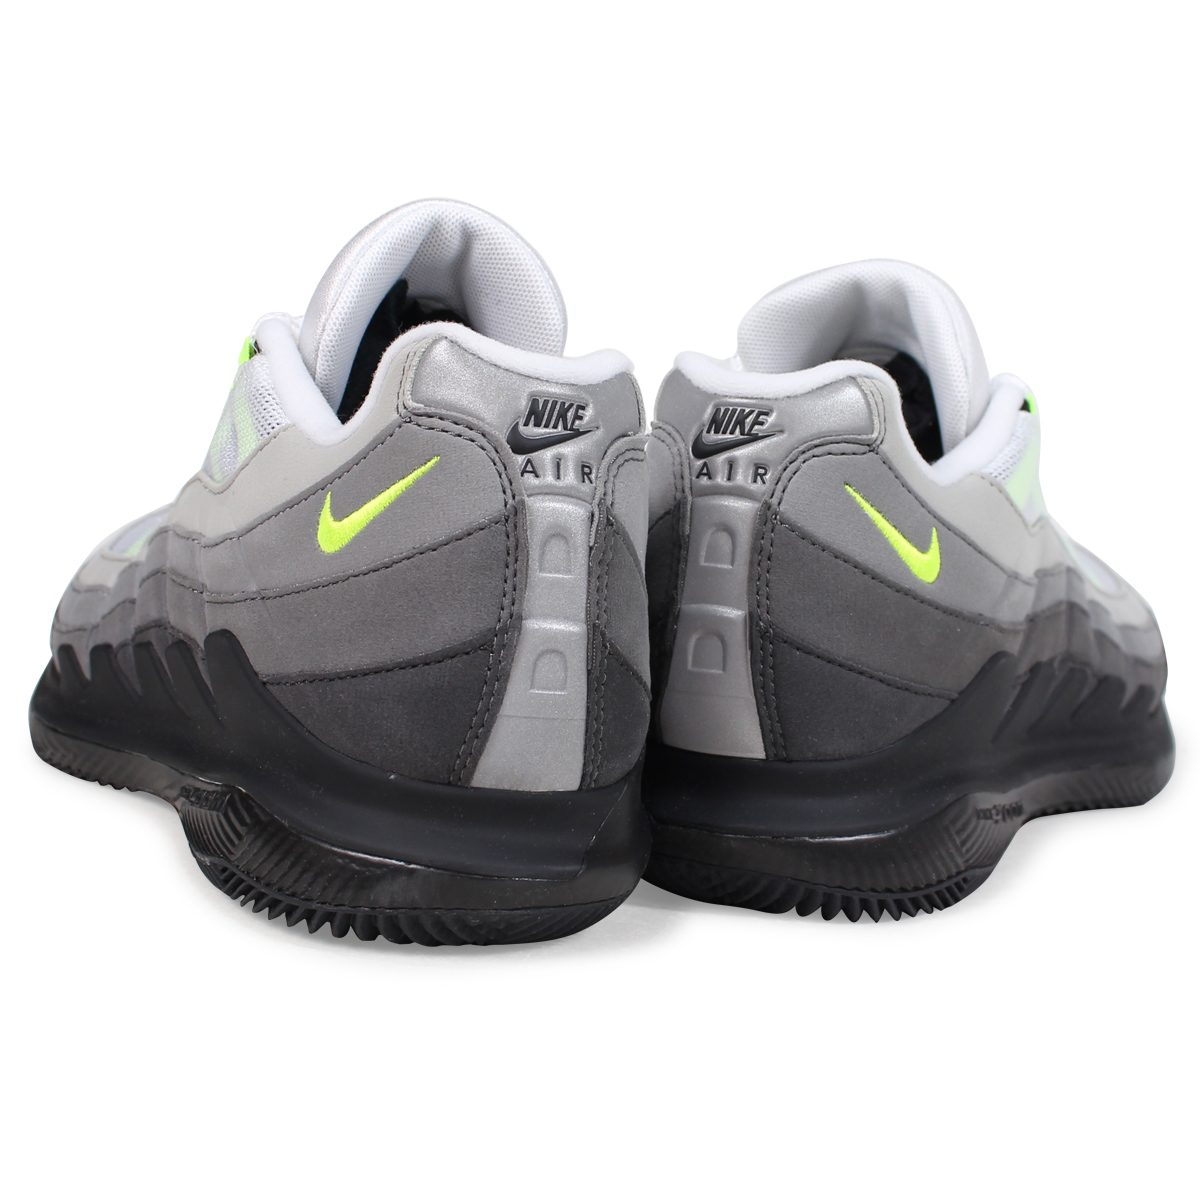 2c9b5ddae4f6 NIKE COURT VAPOR RF X AM95 NEON Nike coat vapor sneakers men AO8759-078 neon  yellow  185